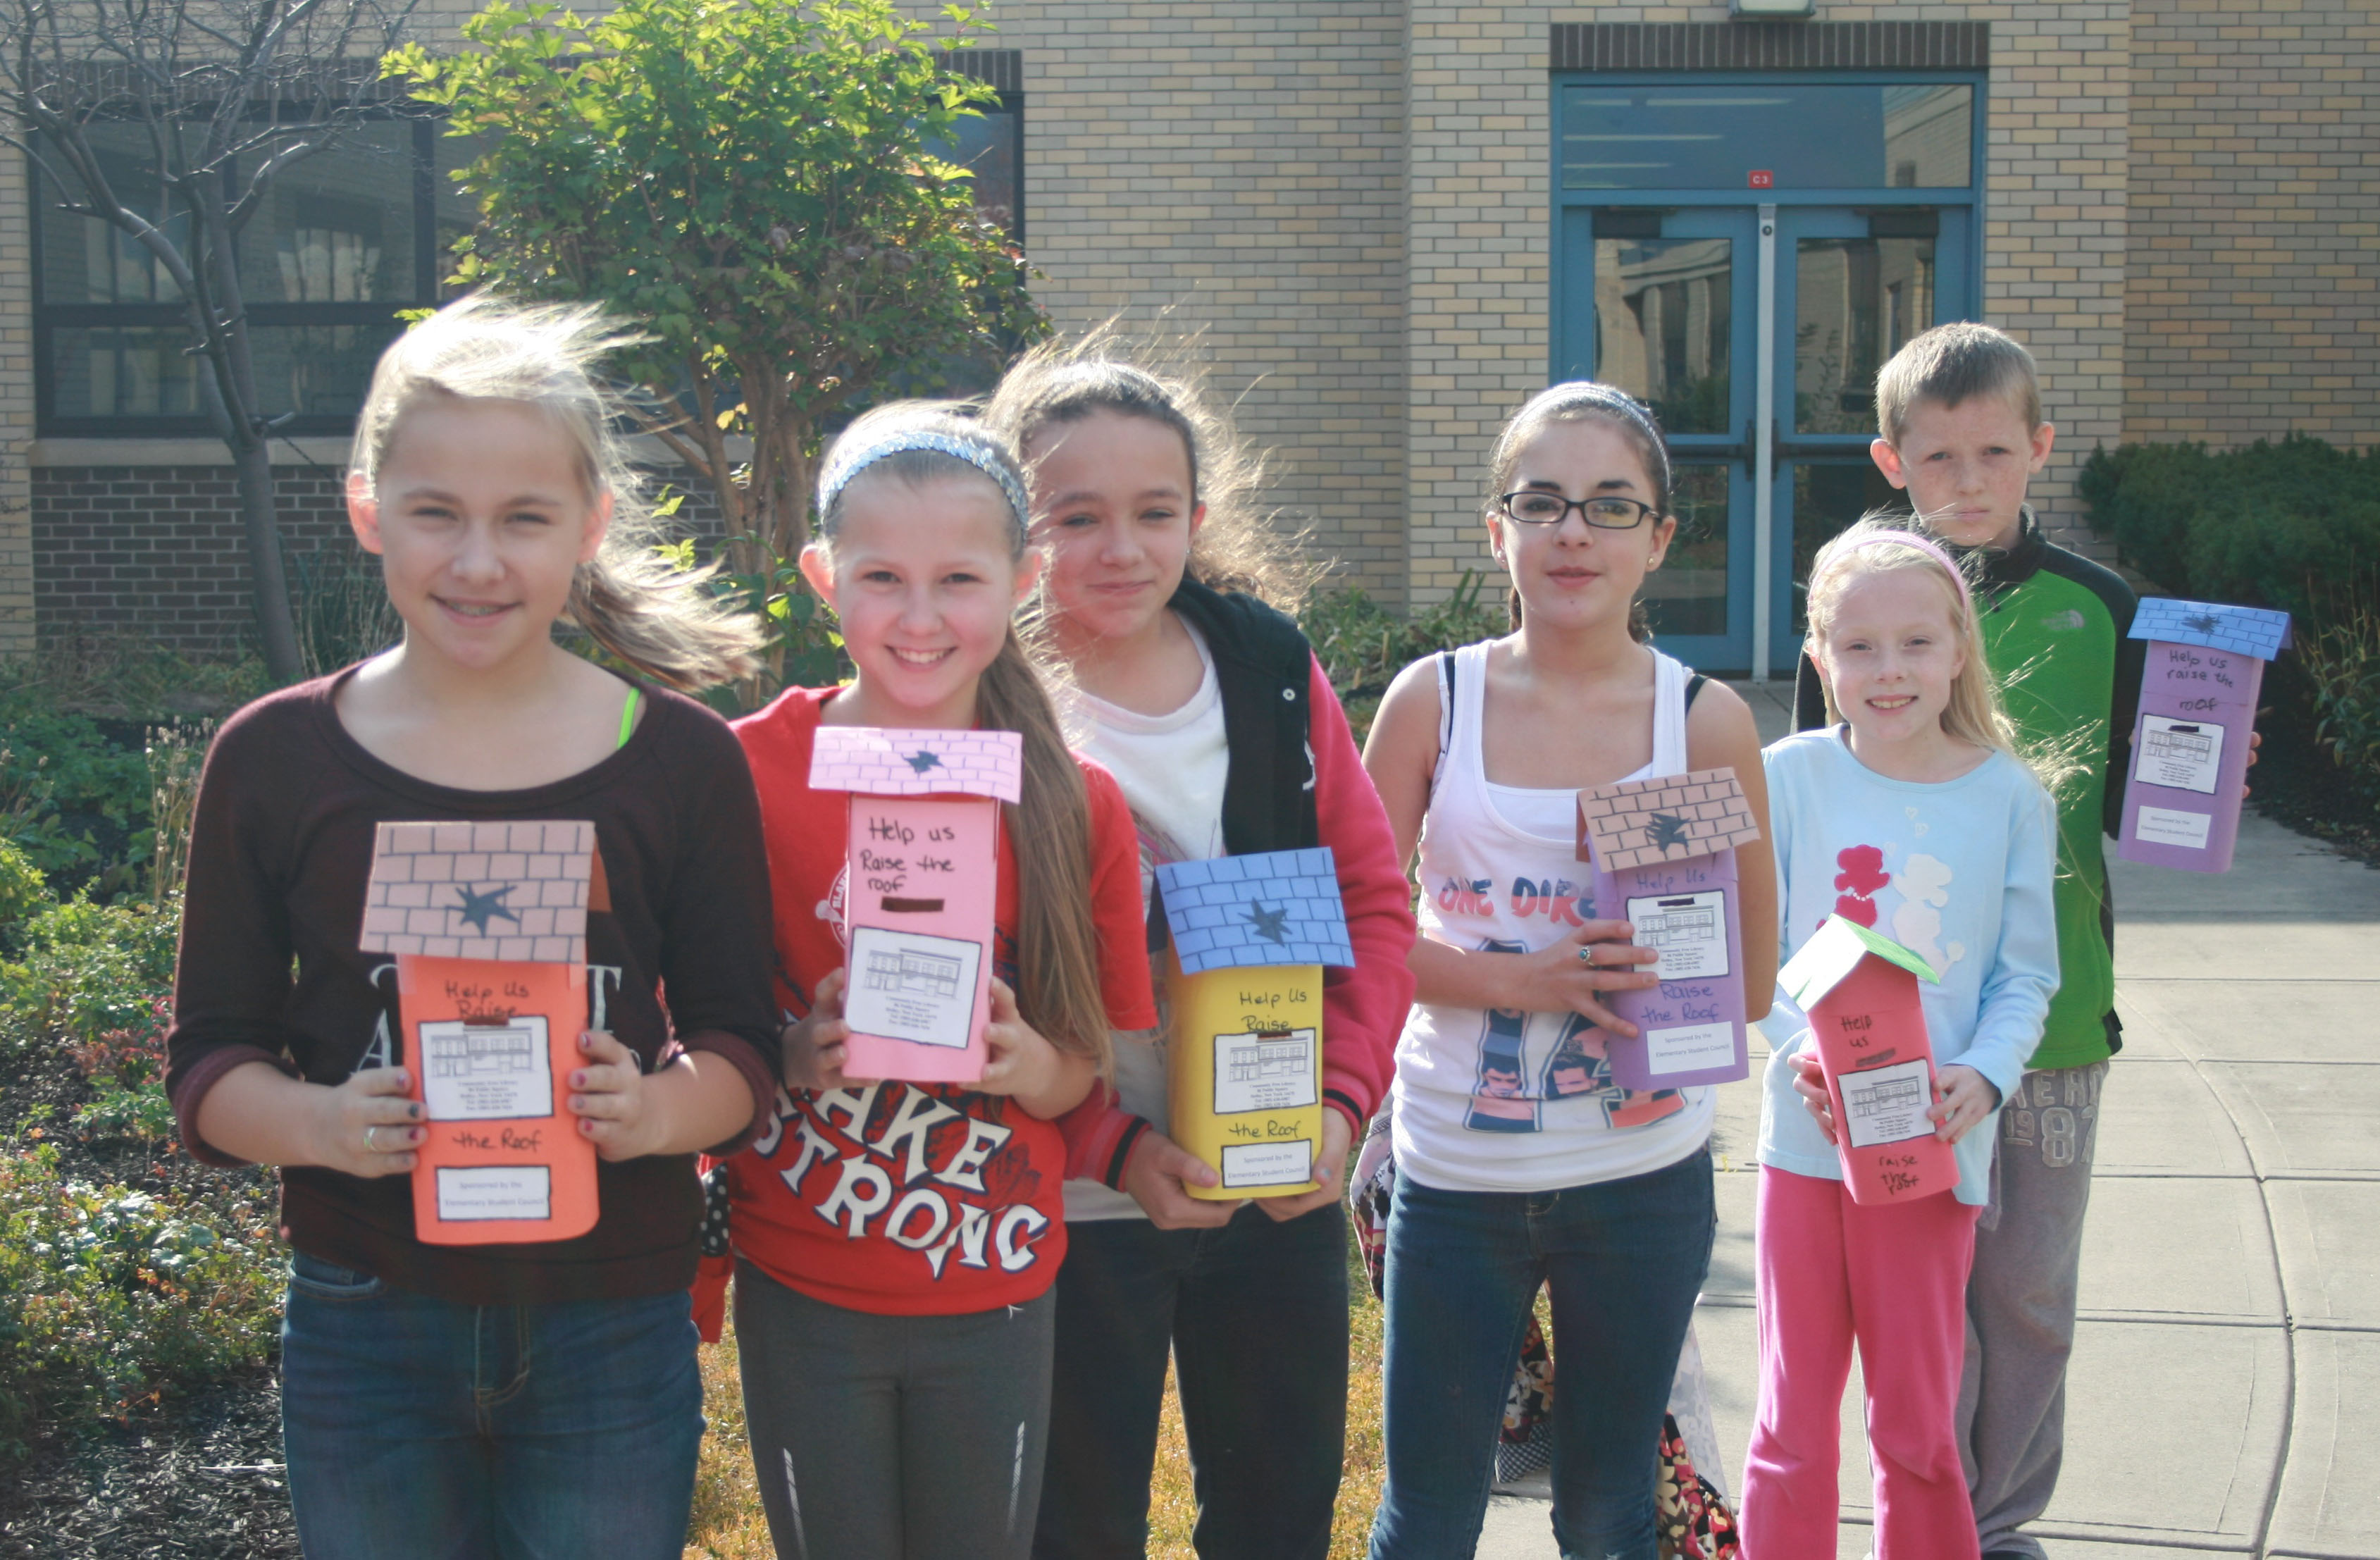 From left, Rachael Howard, Allyson Skehan, Makayla Famoly, Skyla Milazzo, Elise Quincey and Storm Boyce take their containers to Holley village businesses to help collect donations for the library fund.